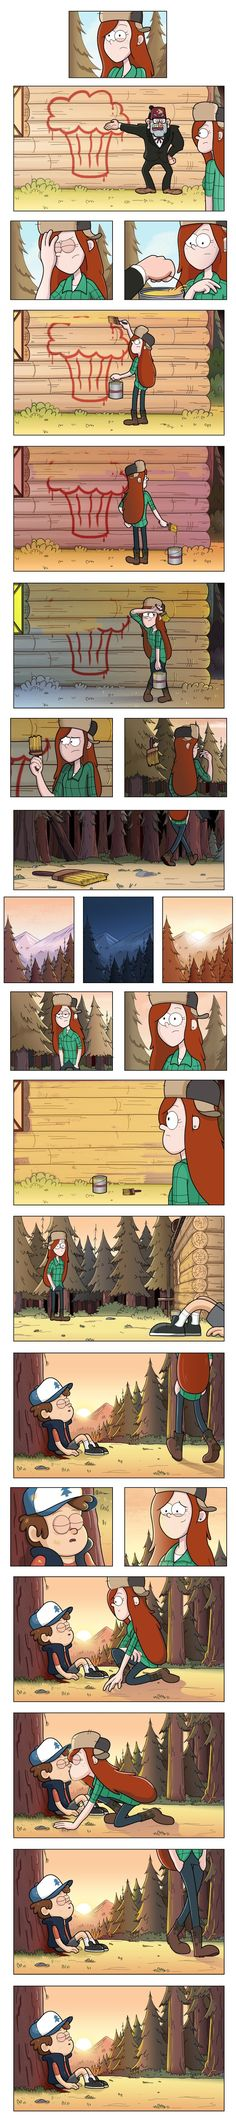 Dipper Finally Gets What He Wants...